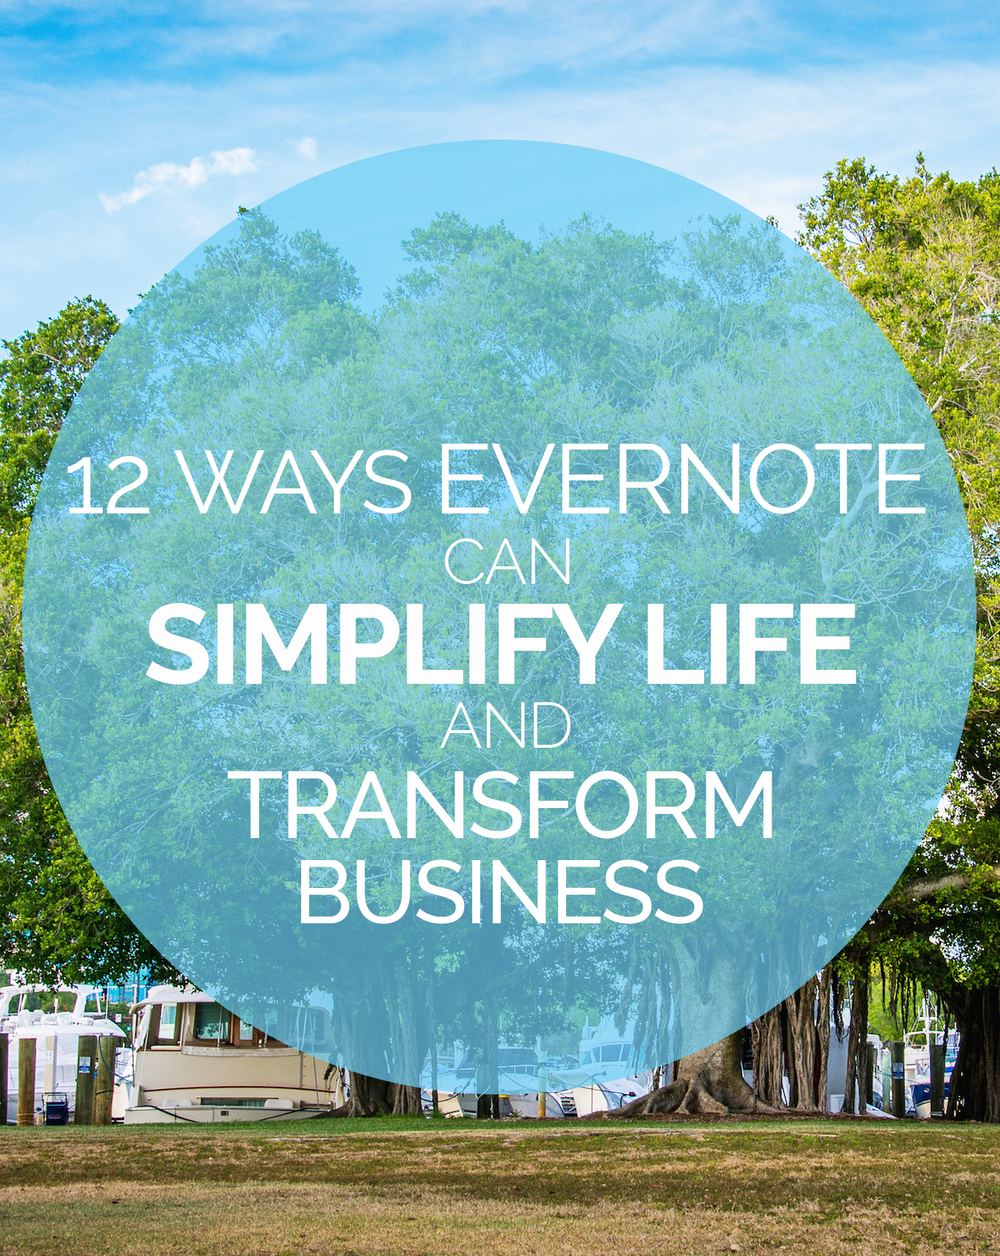 12 Ways Evernote can Simply Life and Transform Business - Leslie Brown